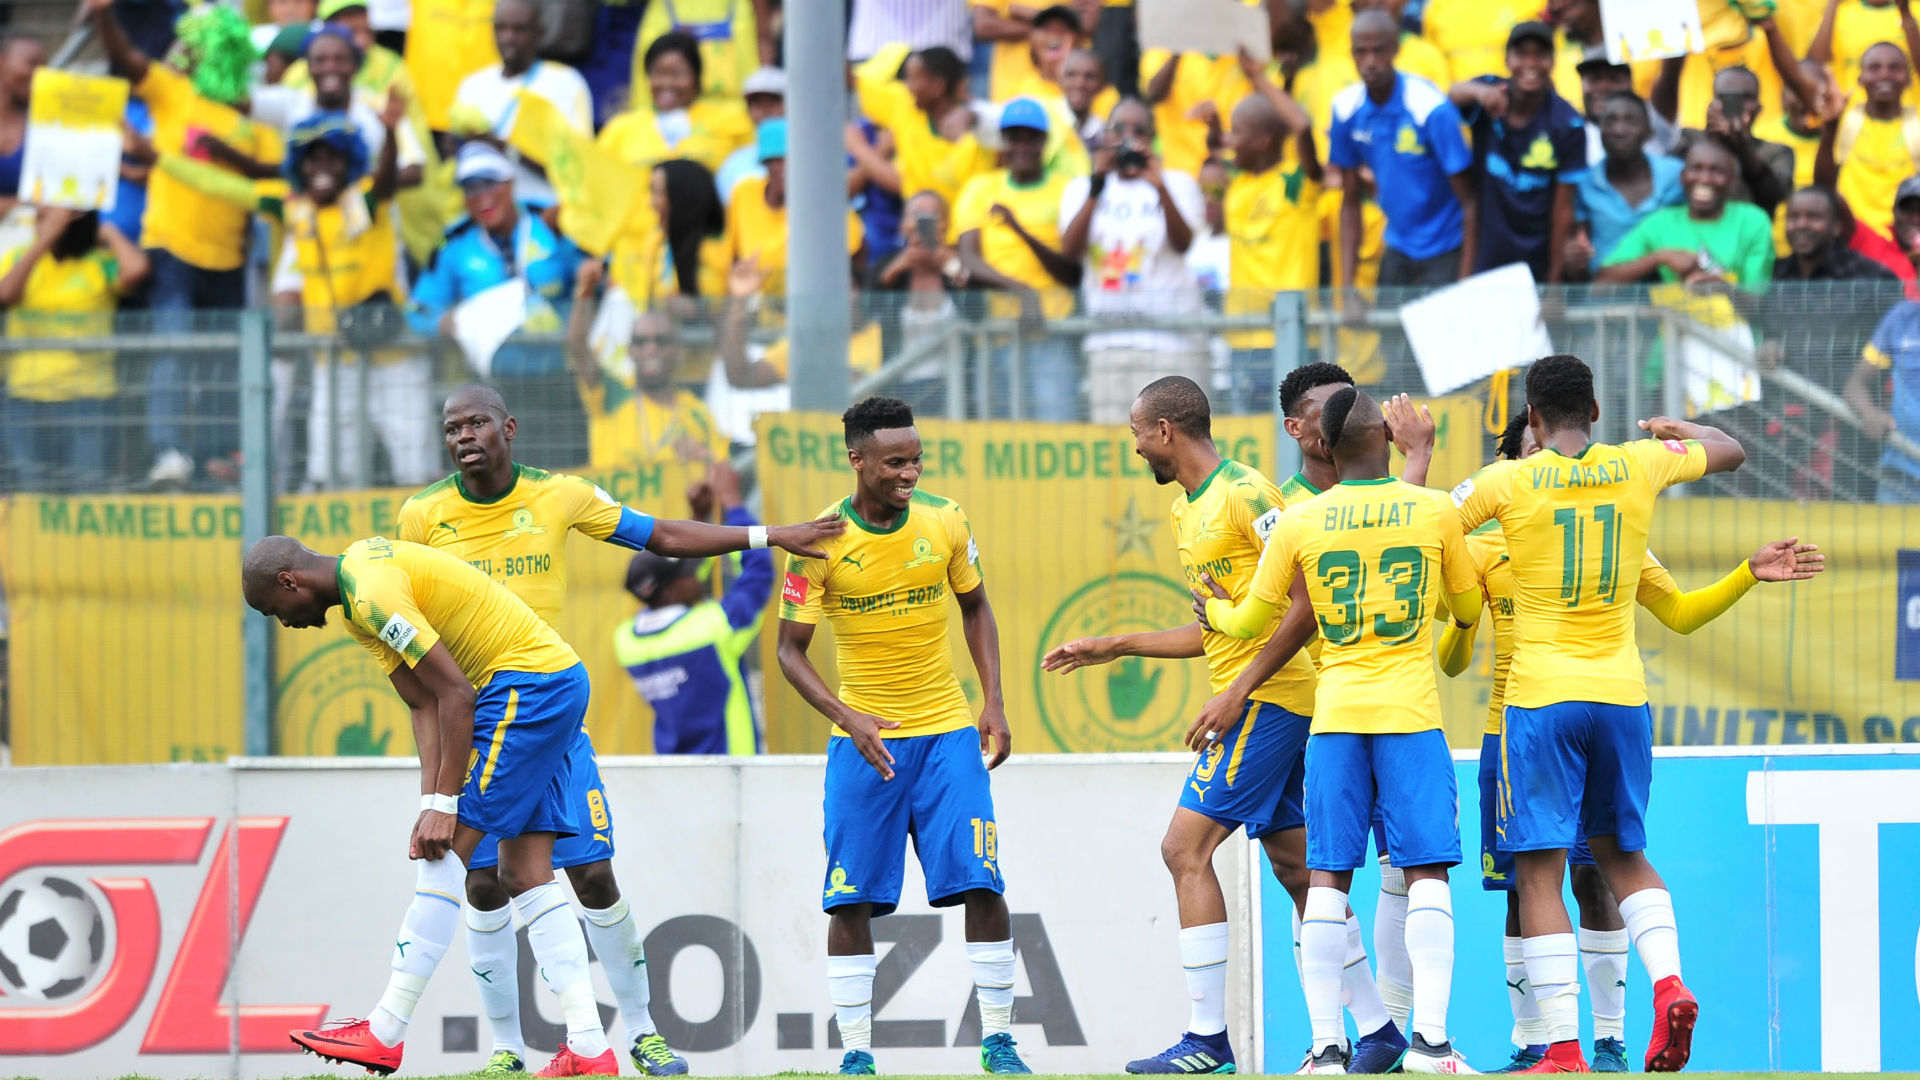 Mamelodi Sundowns champions April 2018